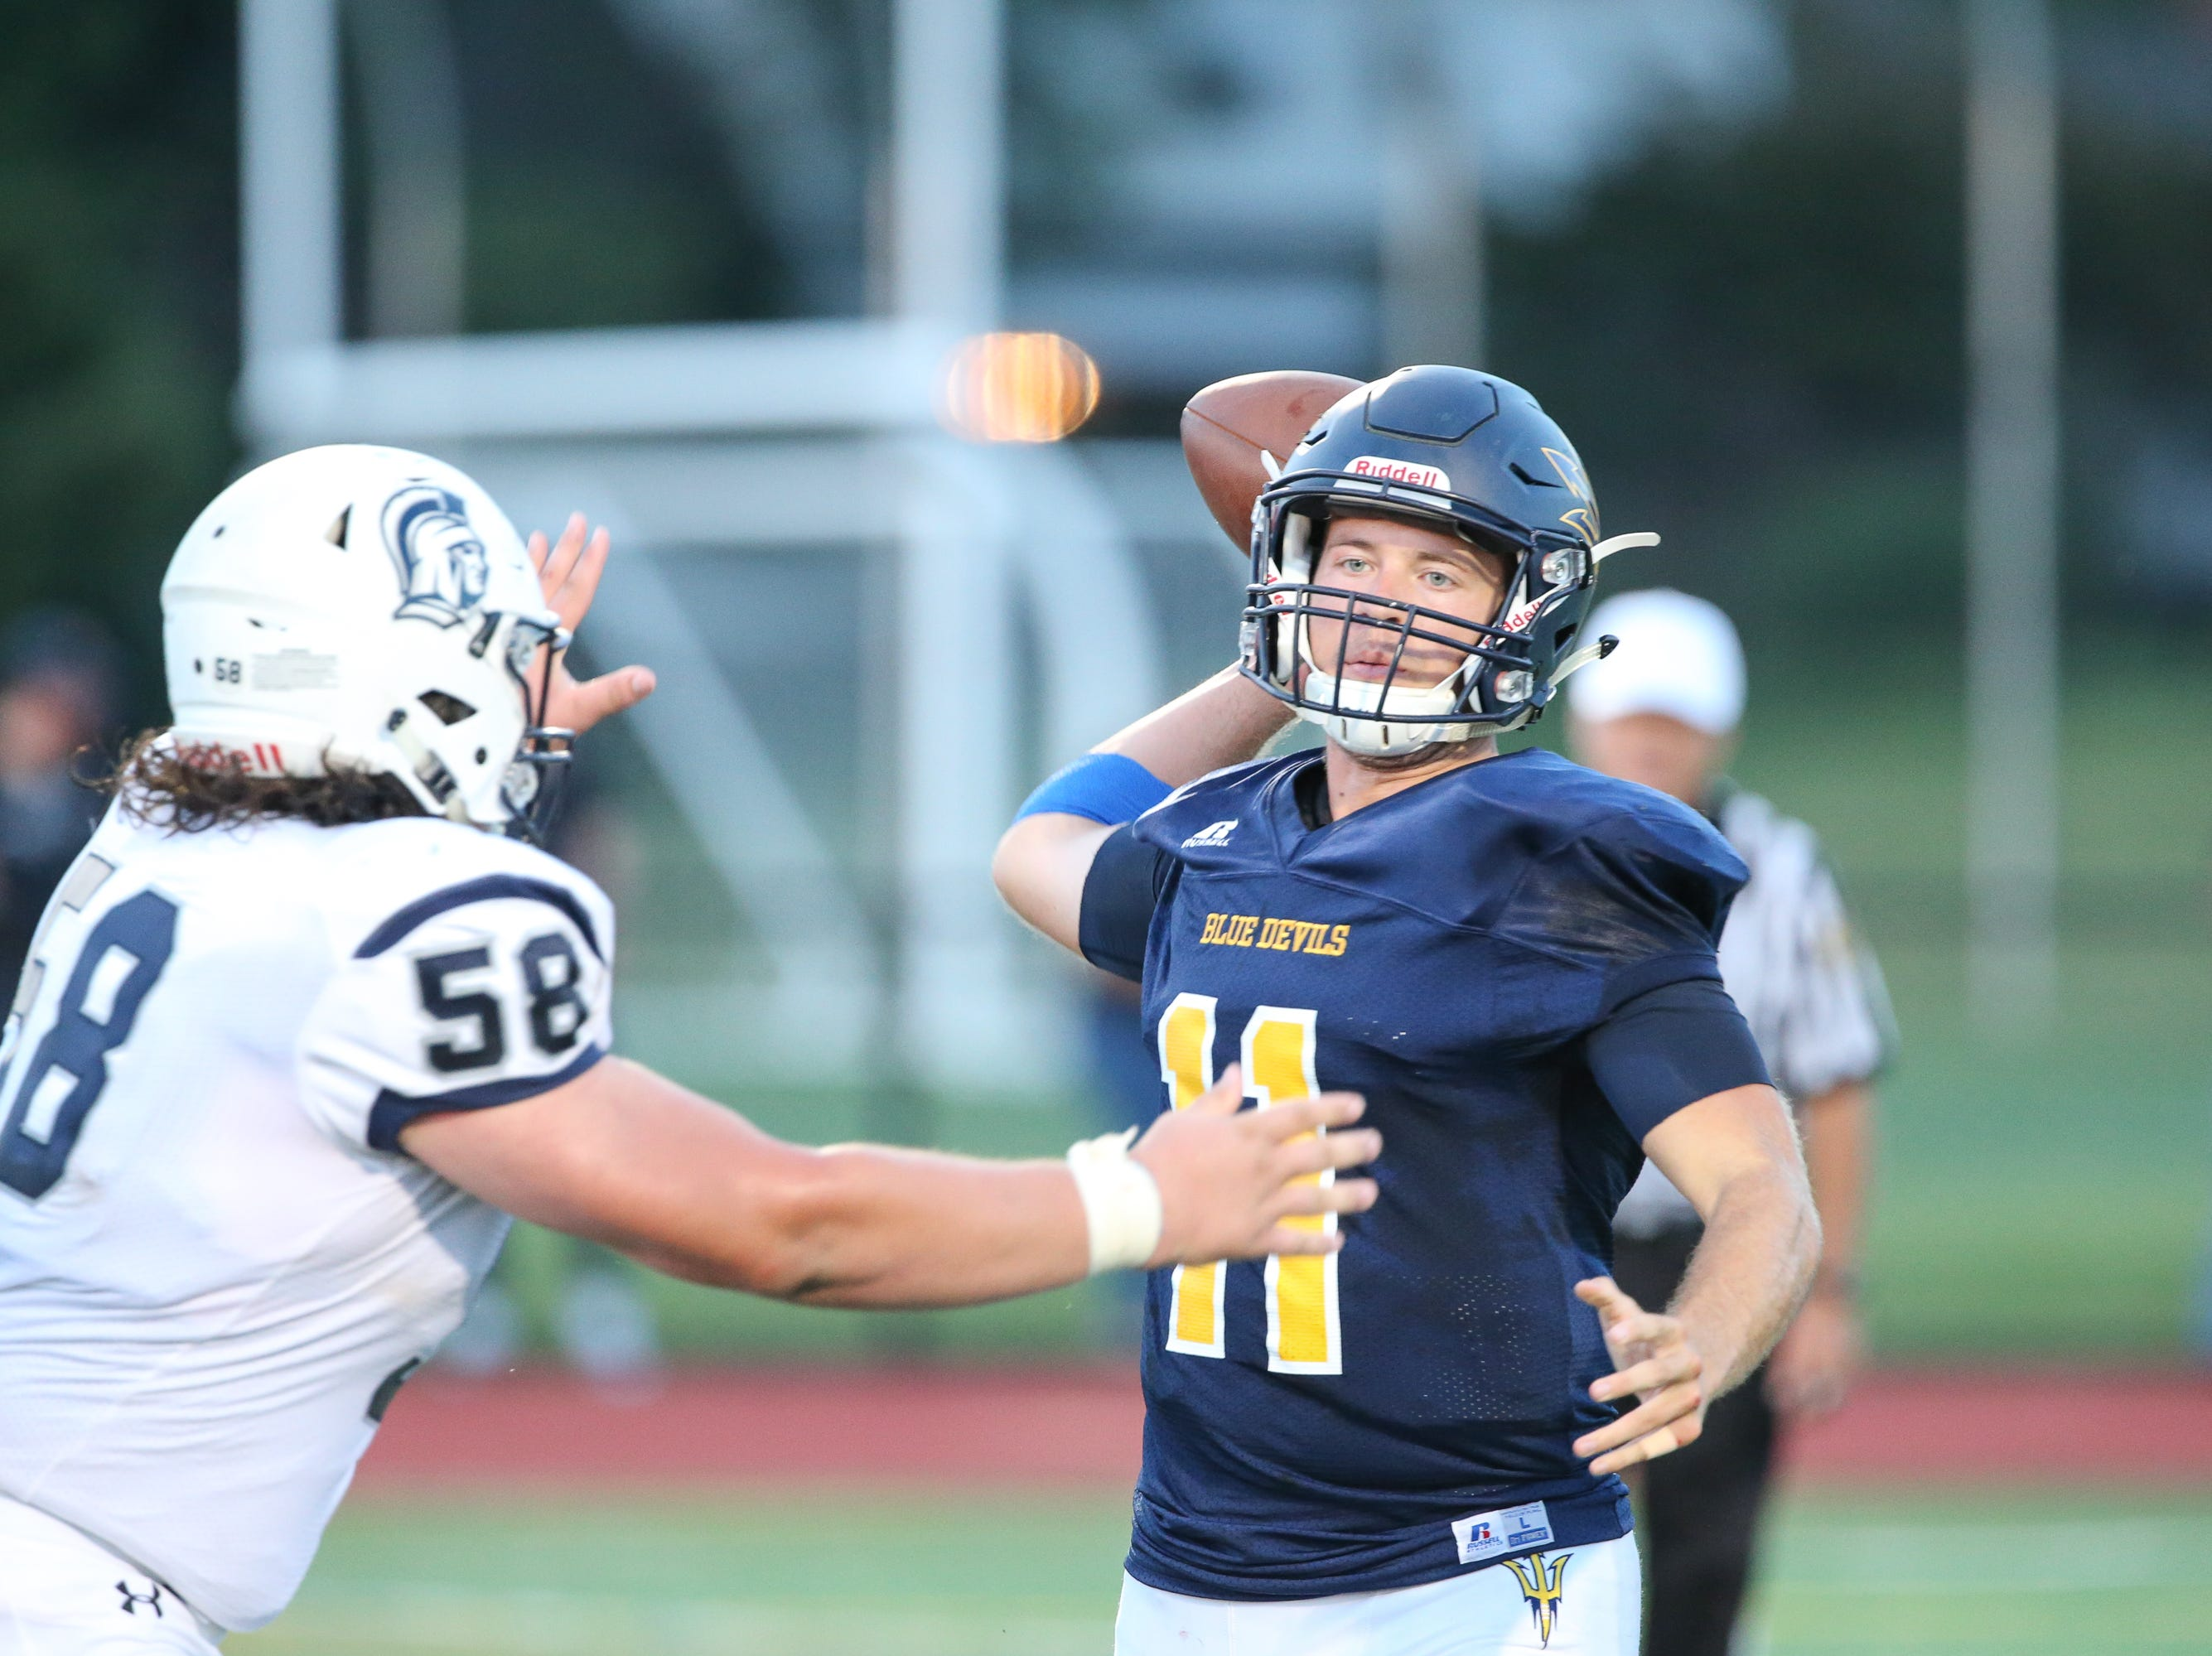 The Greencastle player gets ready to throw the ball during the season opener versus Chambersburg on Friday, Aug. 24, 2018, in Greencastle. Chambersburg won, 48-13.